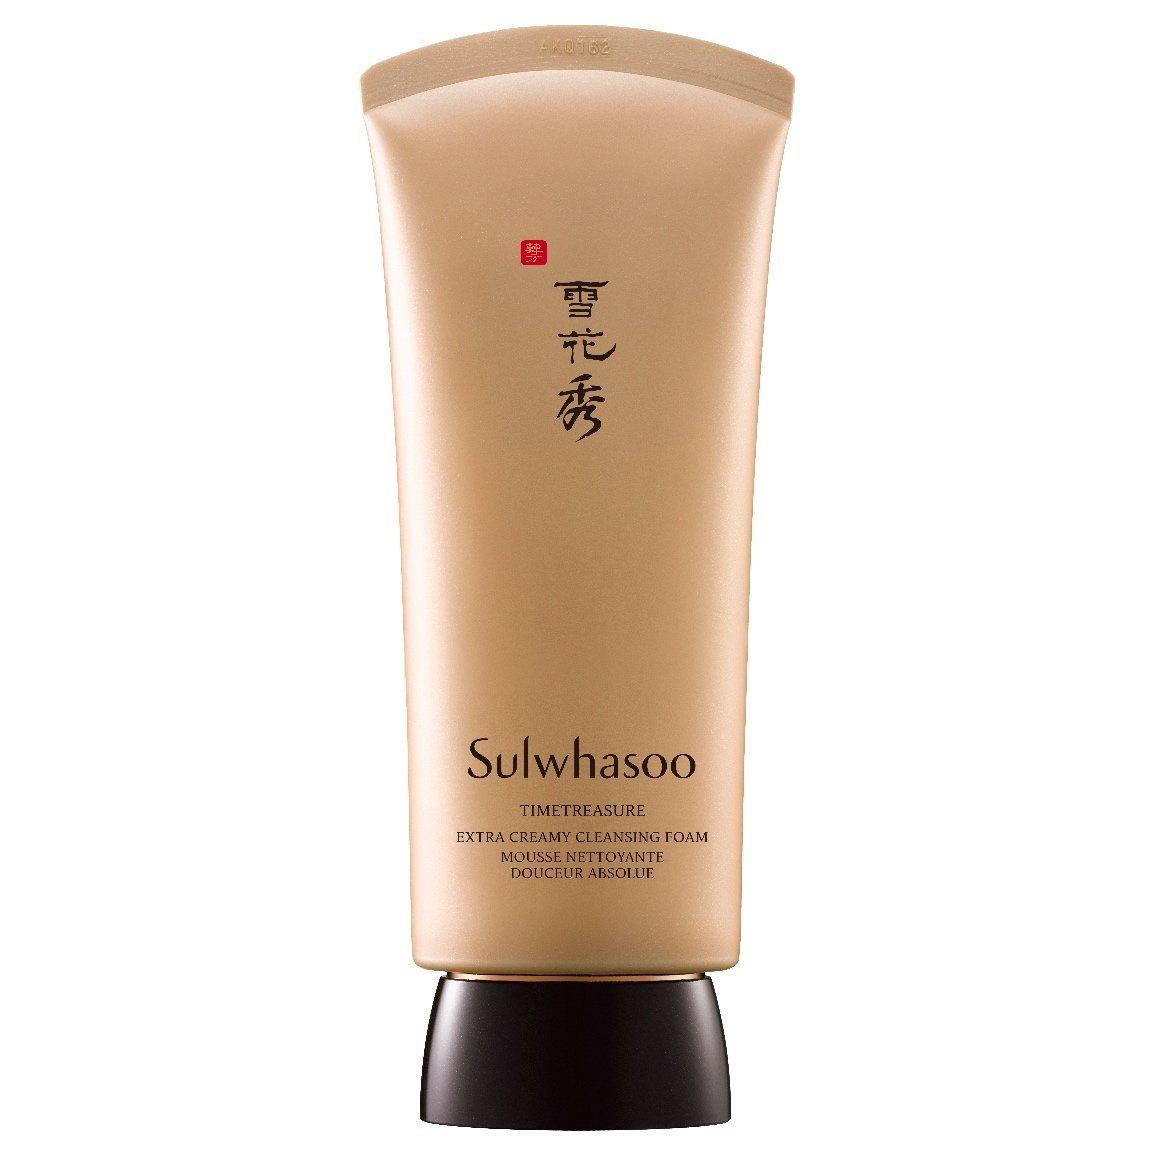 Sulwhasoo Timetreasure Extra Creamy Cleansing Foam product swatch.